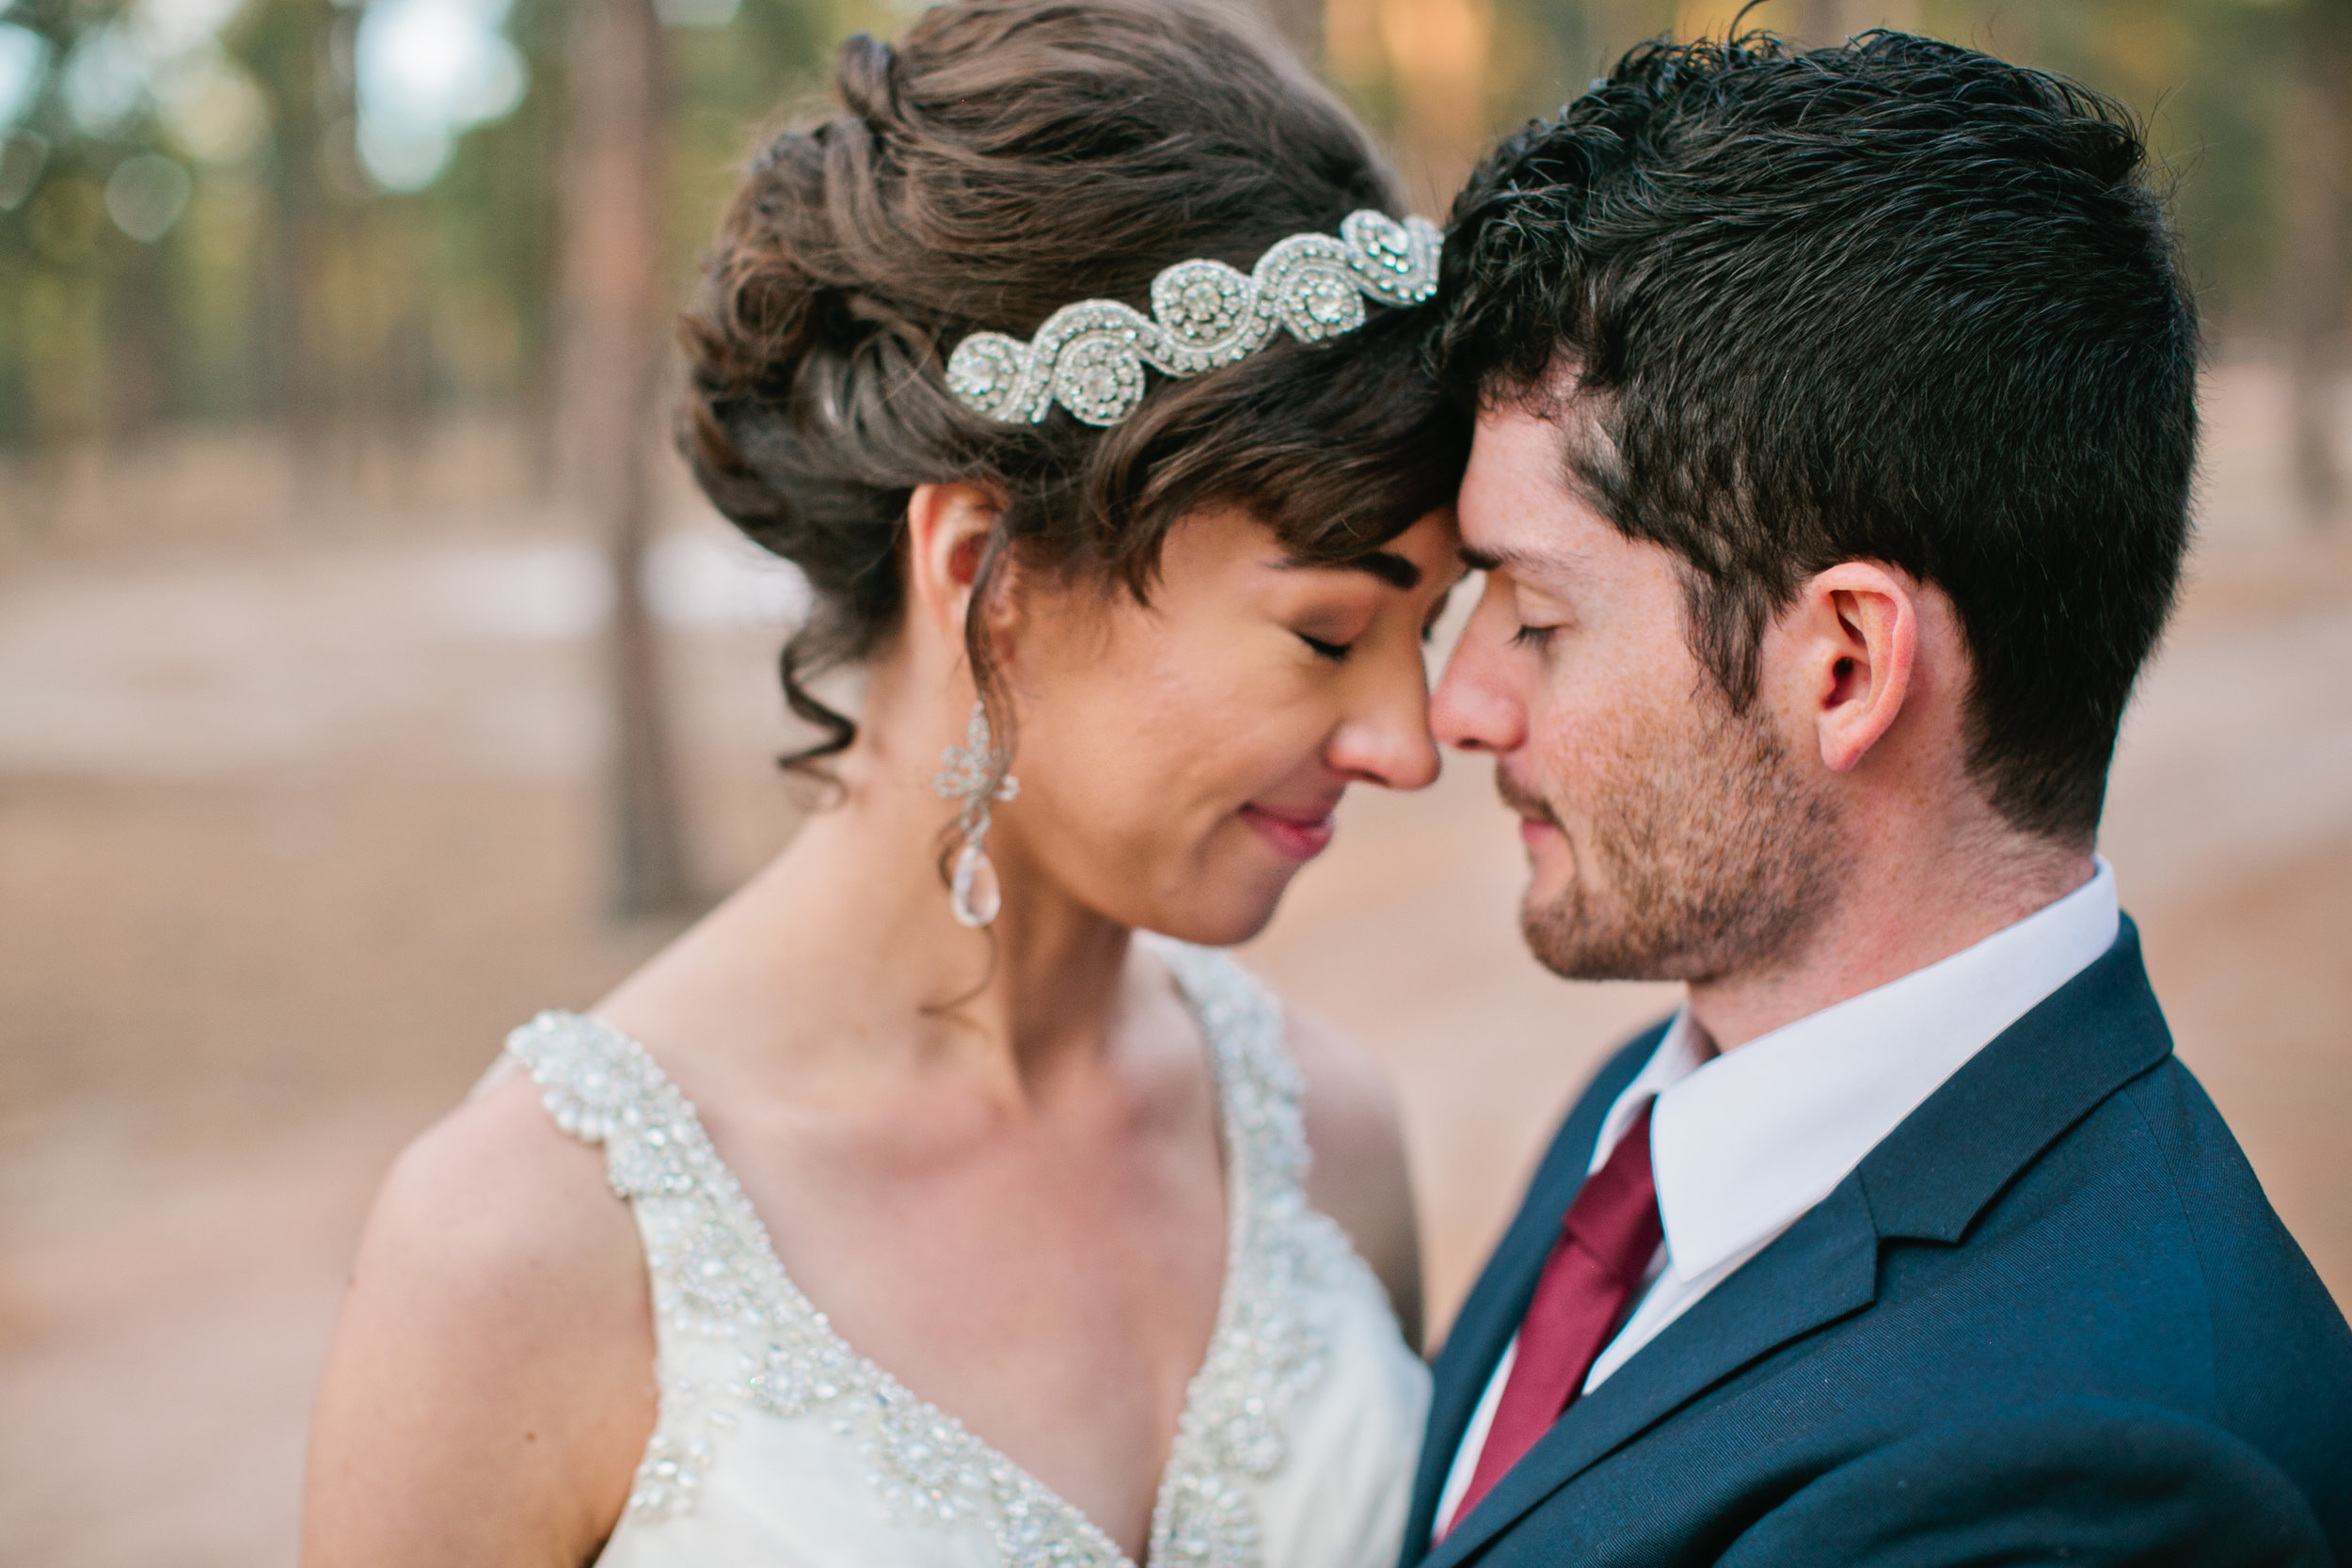 our wedding day photos by the talented Amelia Renee Photography